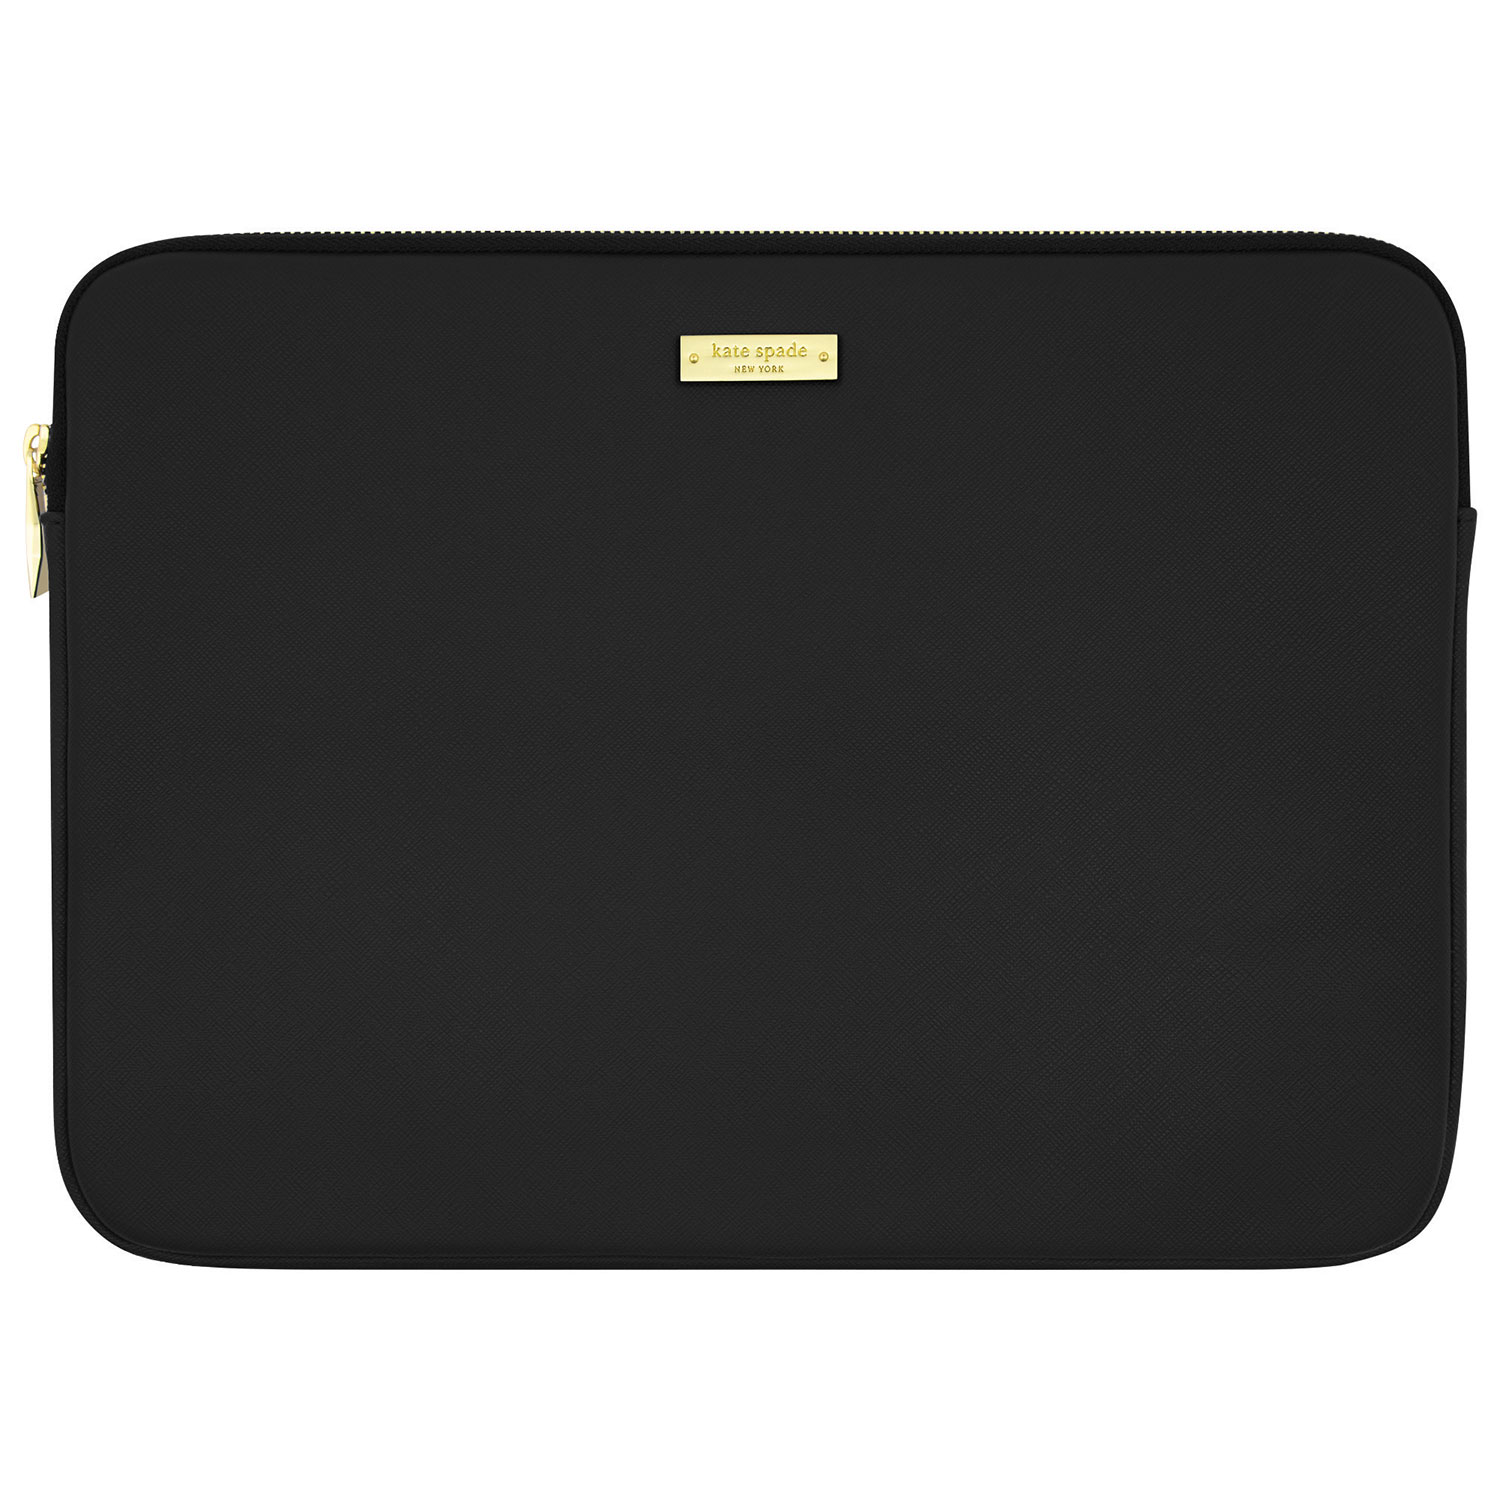 kate spade new york 13 MacBook Sleeve KSMB010BLKINT Black